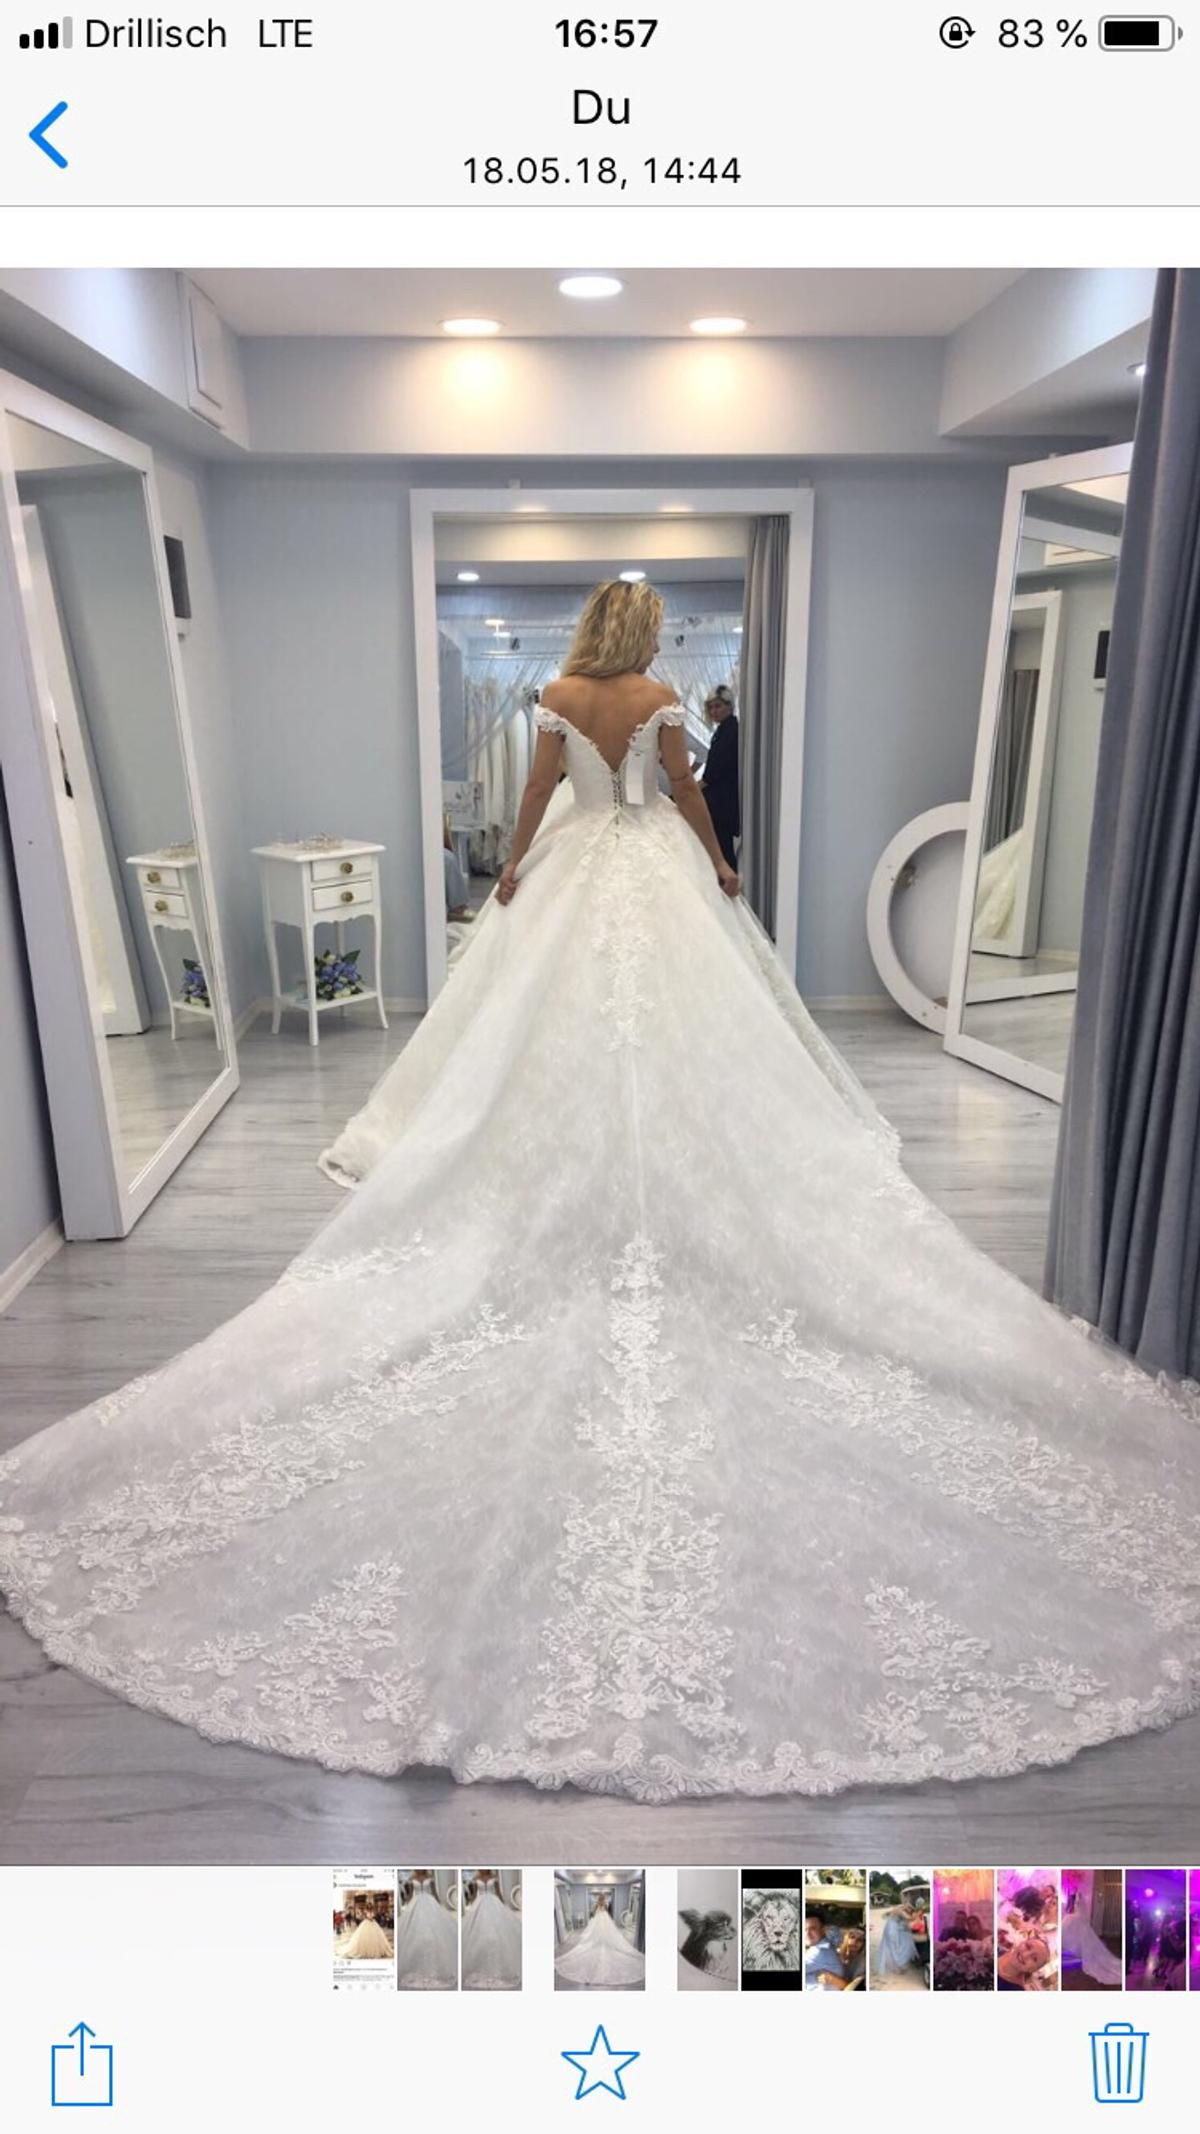 Brautkleid mit langer Schleppe in 133 Heidelberg for €13,13.13